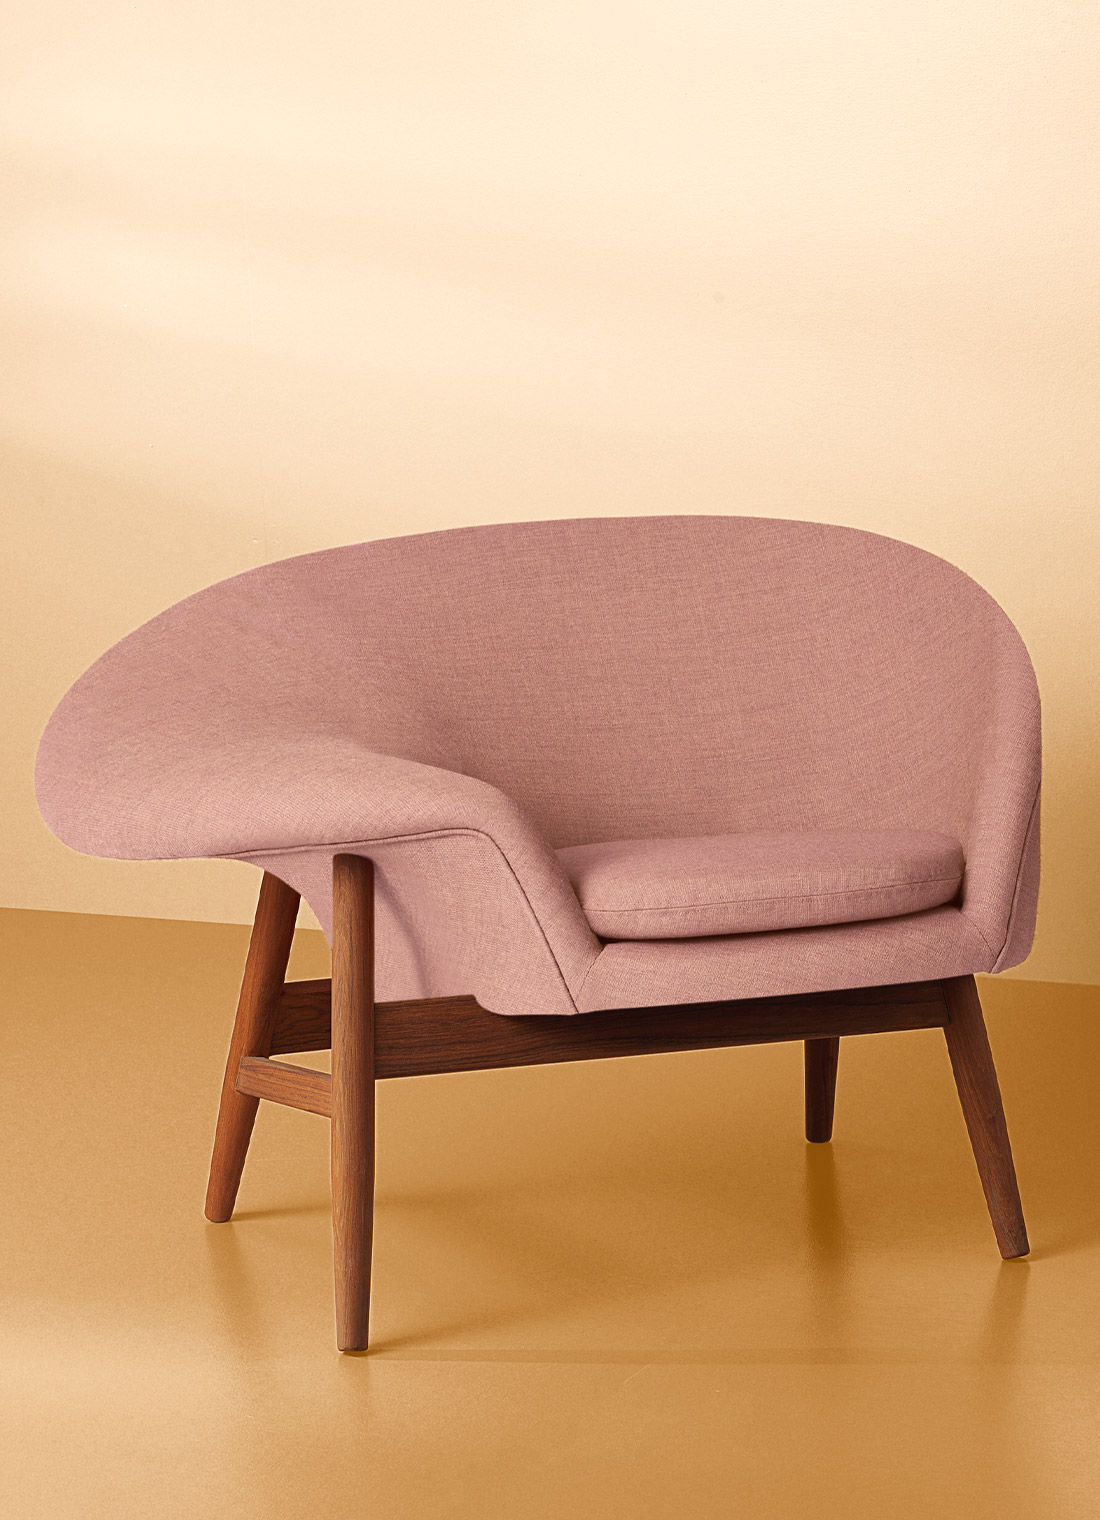 Fried Egg lounge chair in pale rose colour on yellow background.